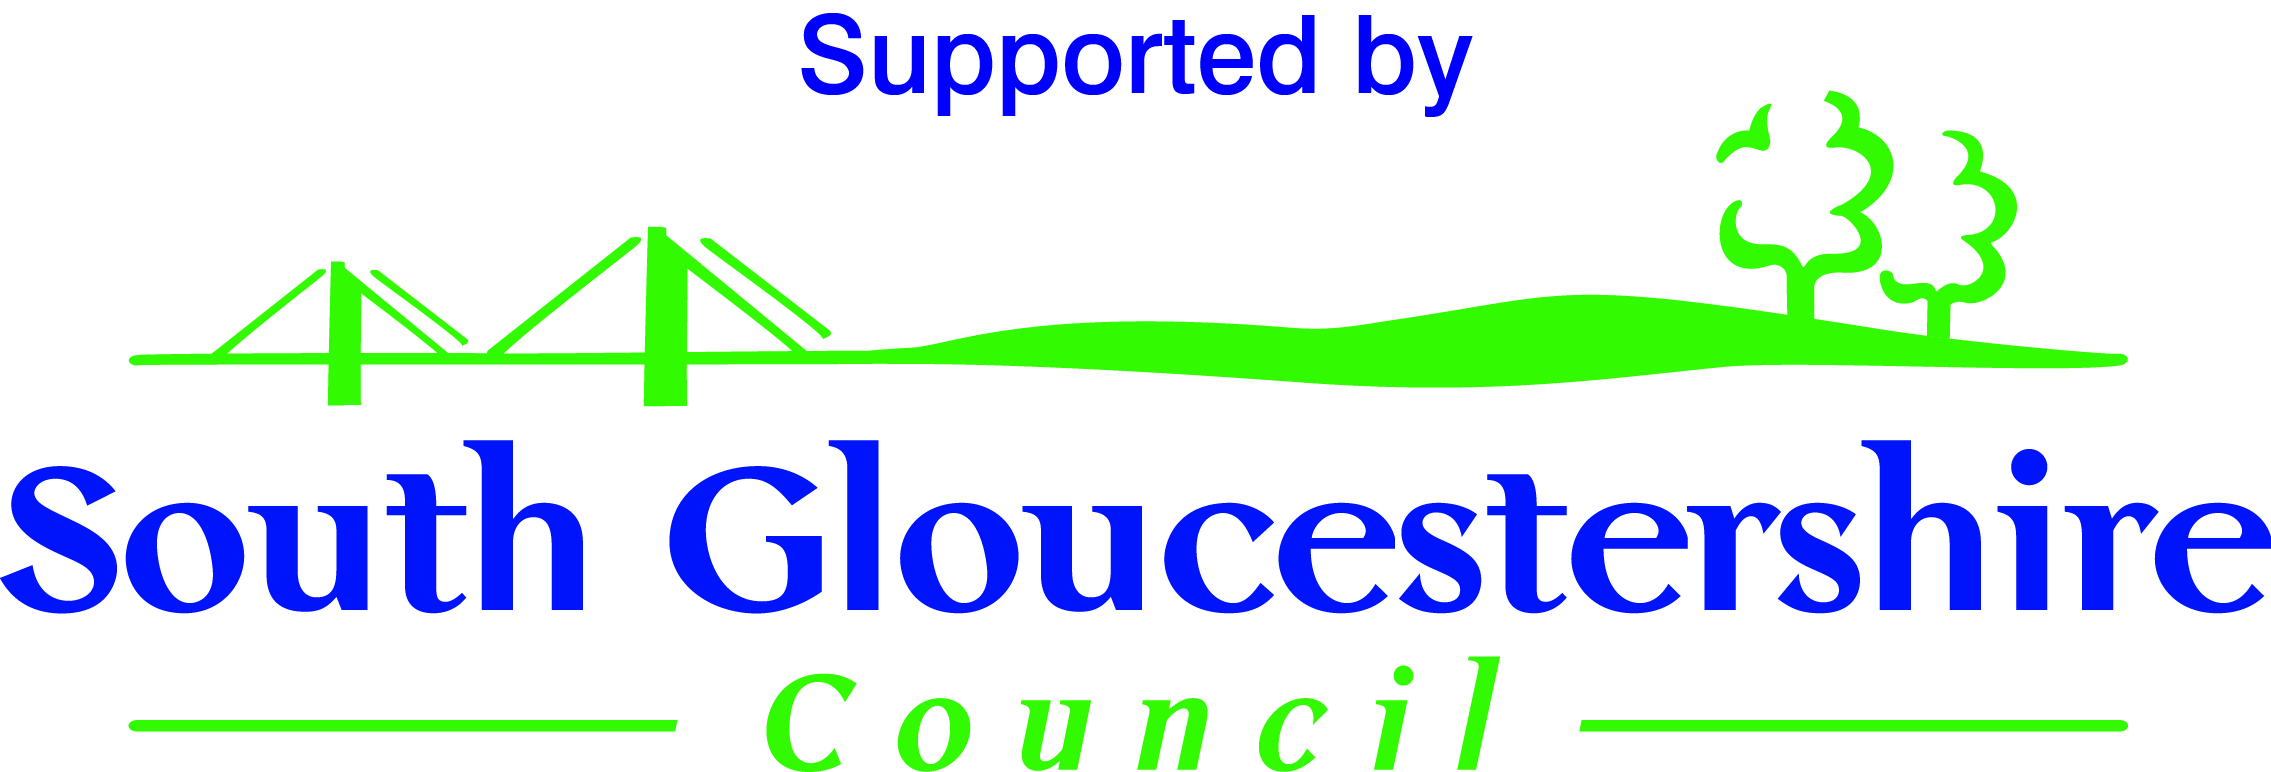 Supported by South Gloucestershire Council